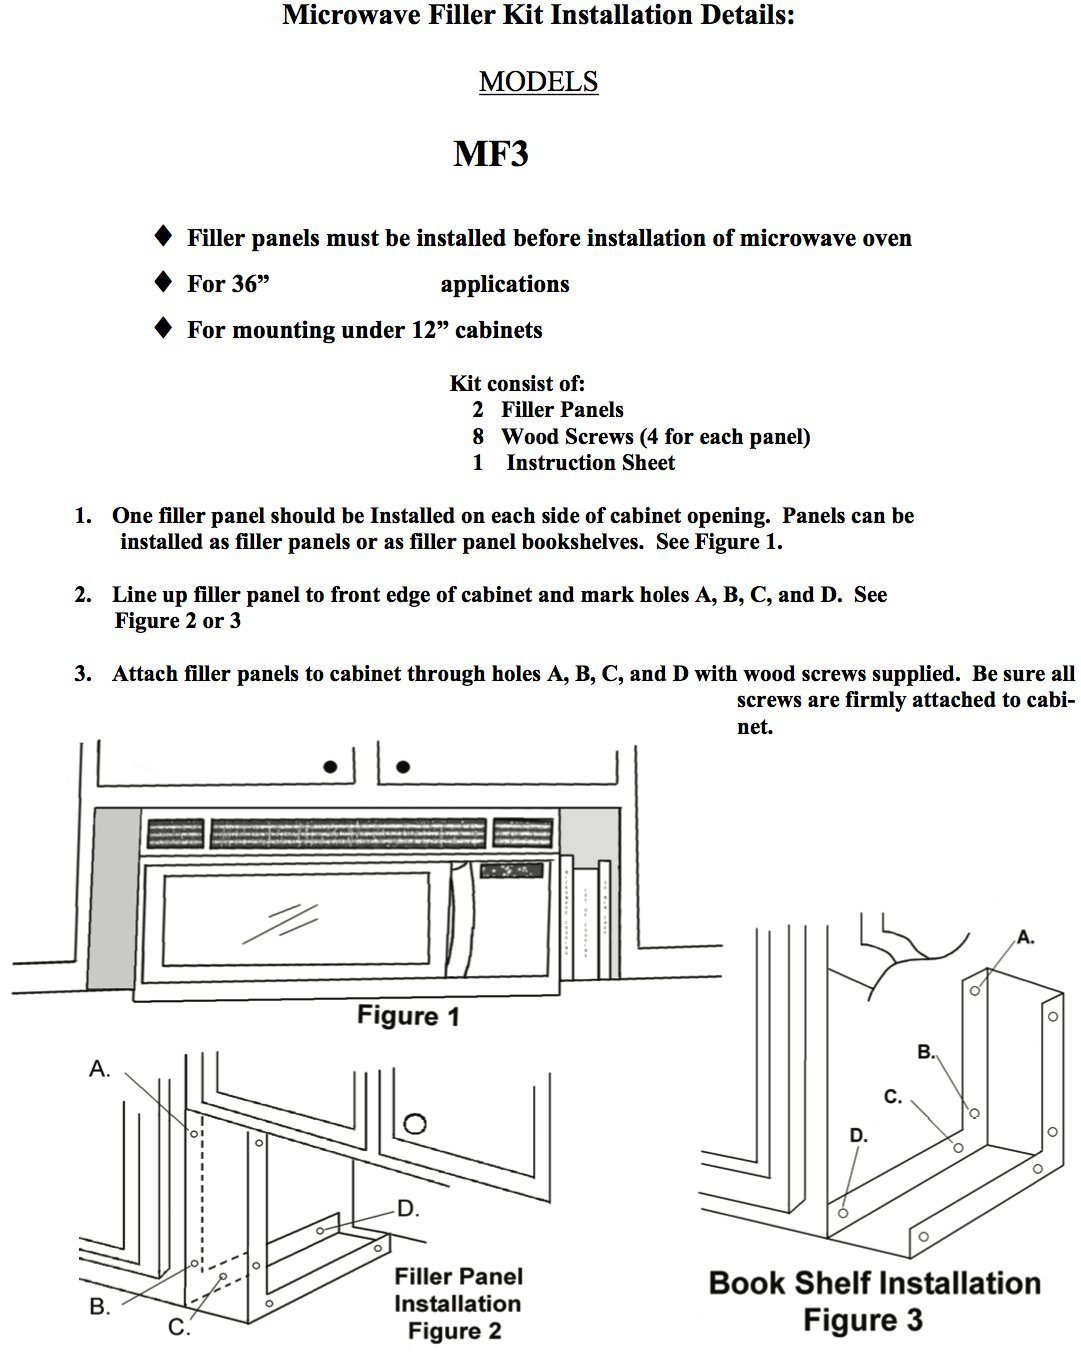 Installation of microwaves over the range - Amazon Com Universal Stainless Steel Over The Range L Shaped Microwave Fill Filler Kit Fills A 36 Wide By 15 3 4 Tall Spot Mf3 Ss Appliances